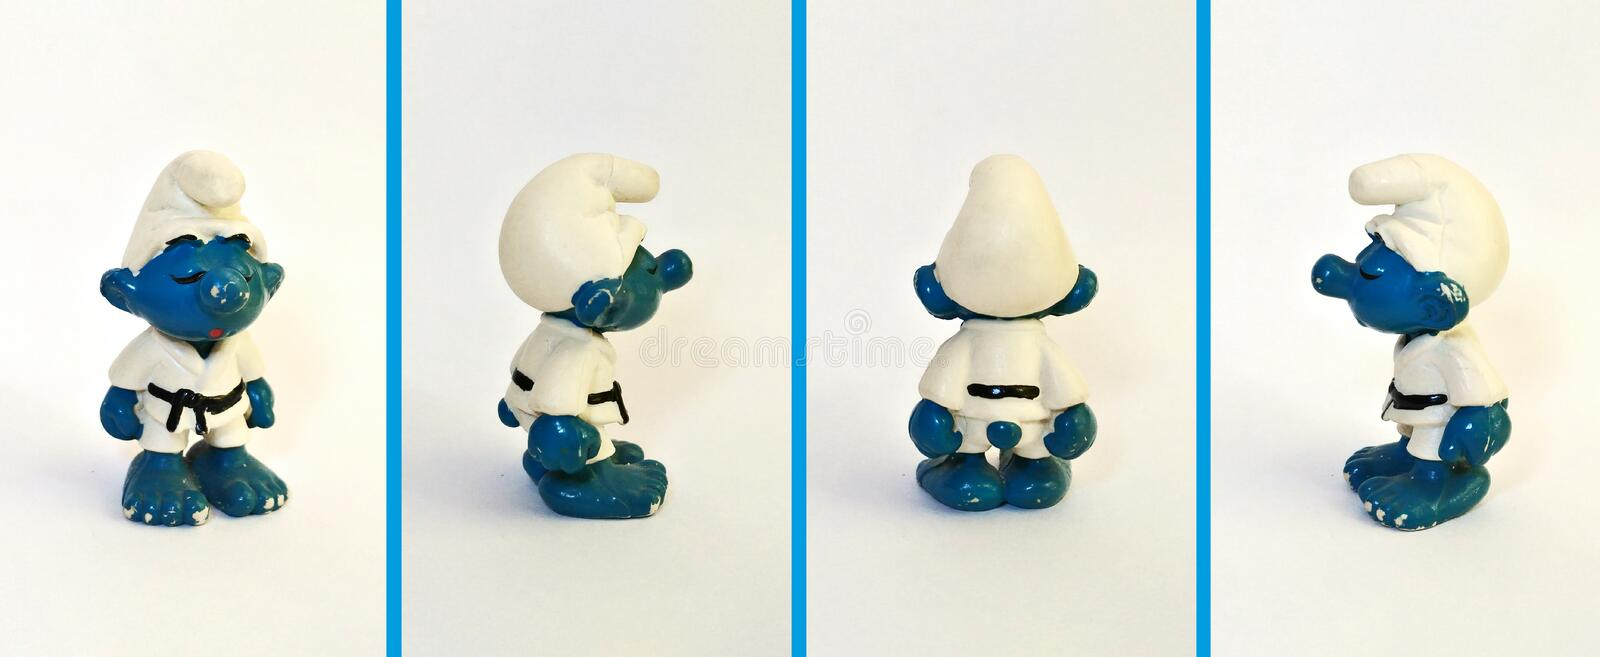 Collectible leksaker: Karate Smurf! royaltyfria bilder